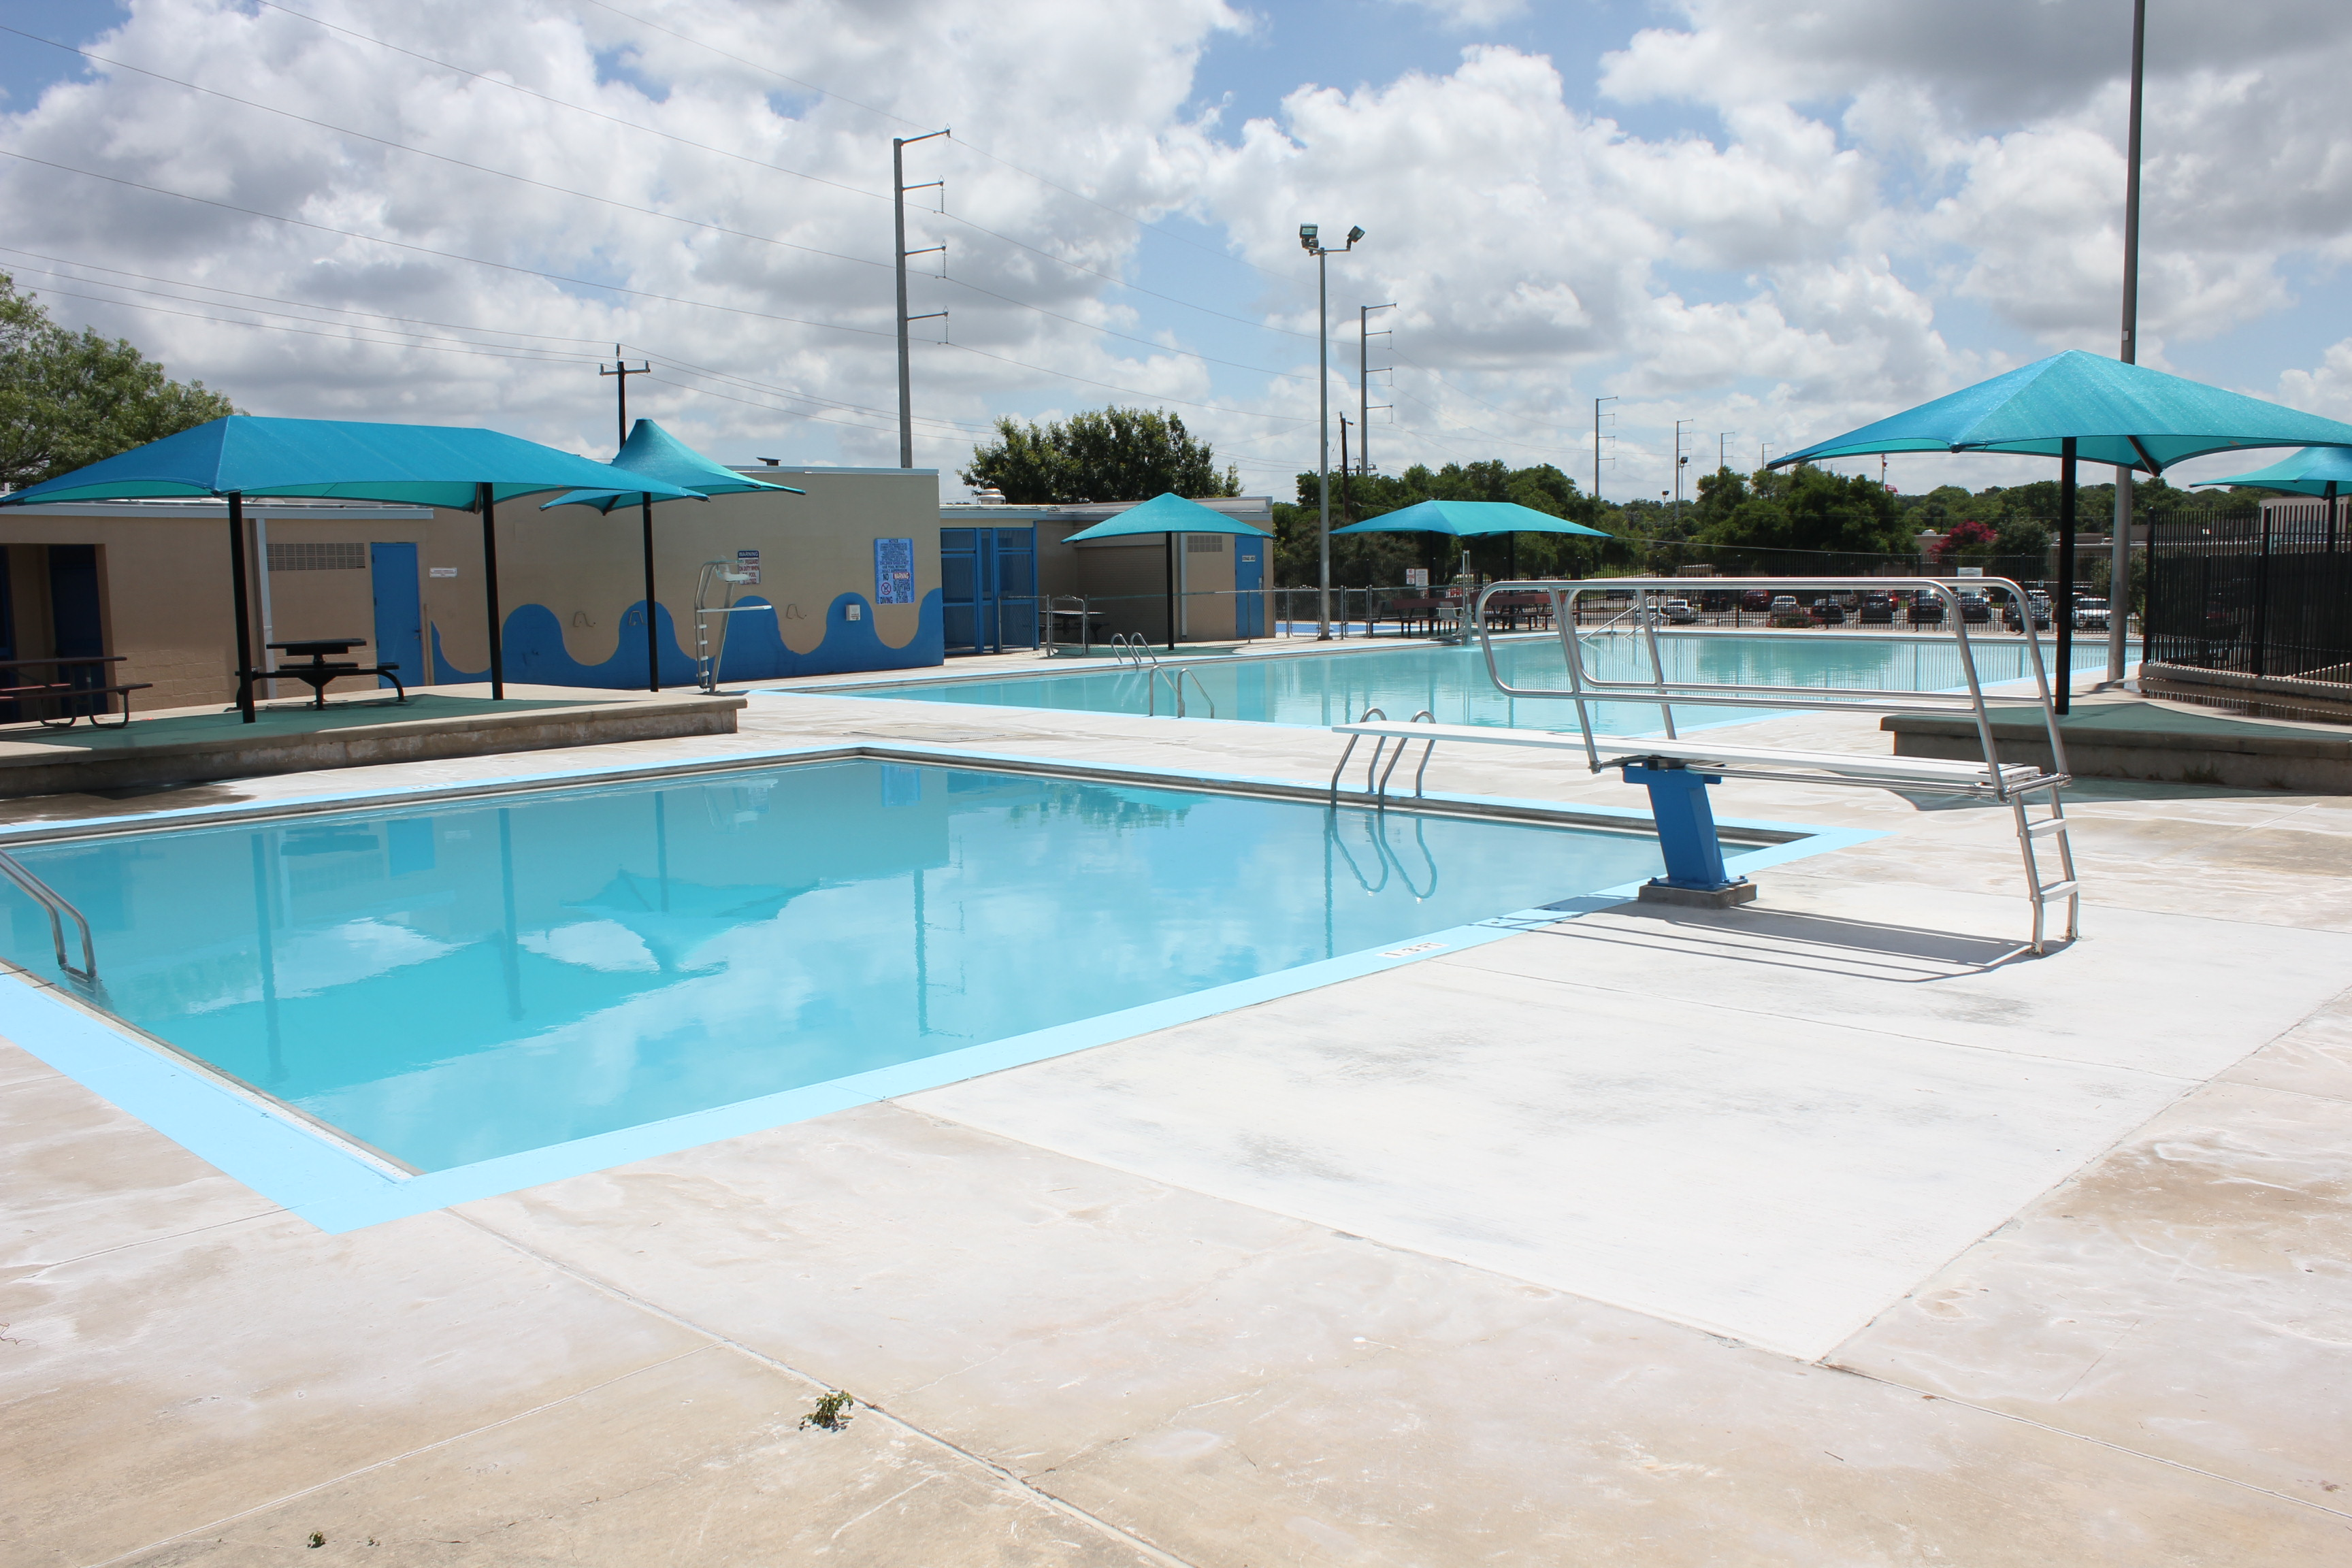 Garza park the city of san antonio official city website City of san antonio swimming pools